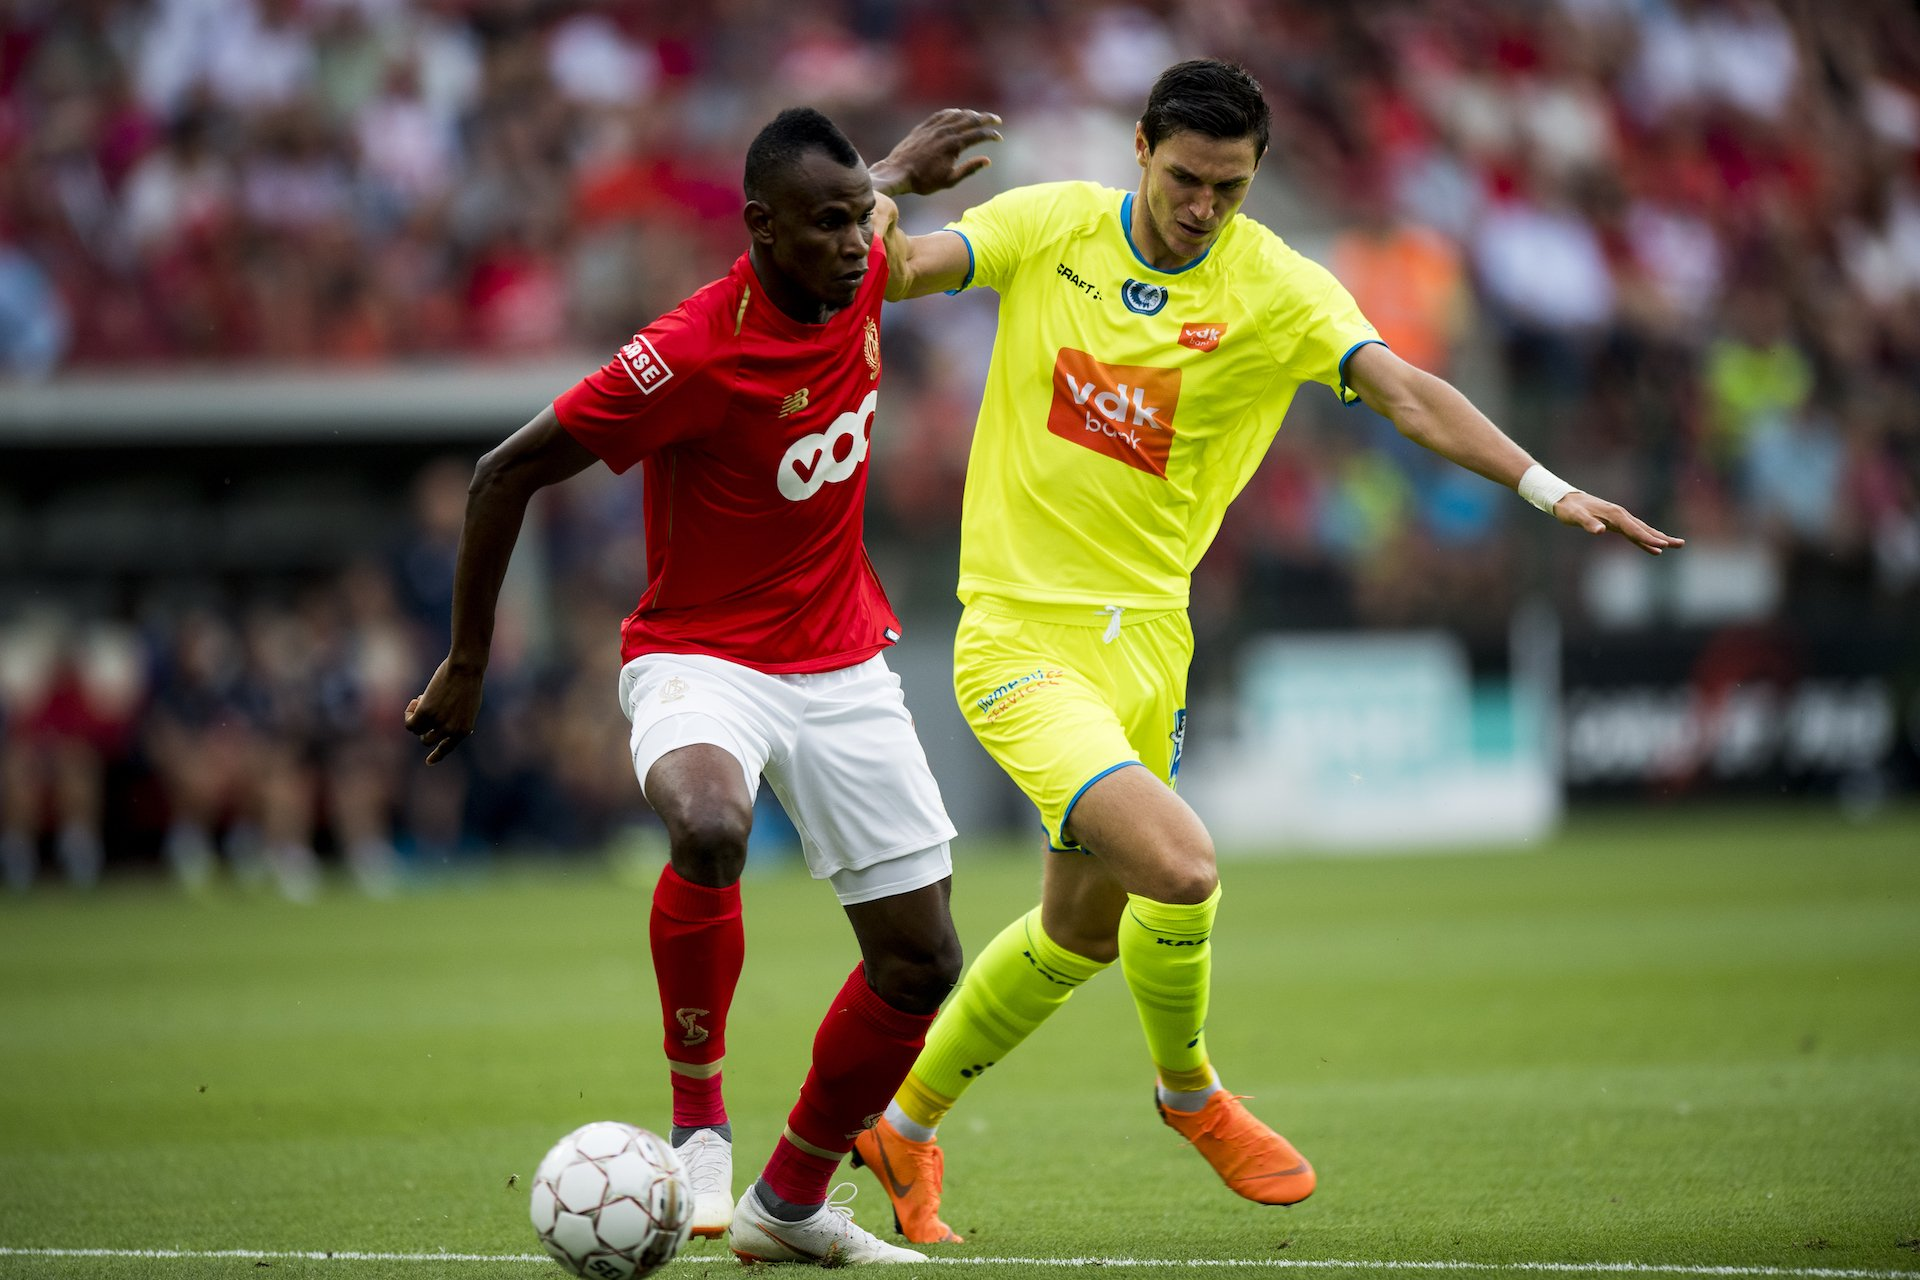 Agbo Starts, Esiti And Awoniyi Subbed On As Standard Liege Beat Gent On Belgian League Opening Day